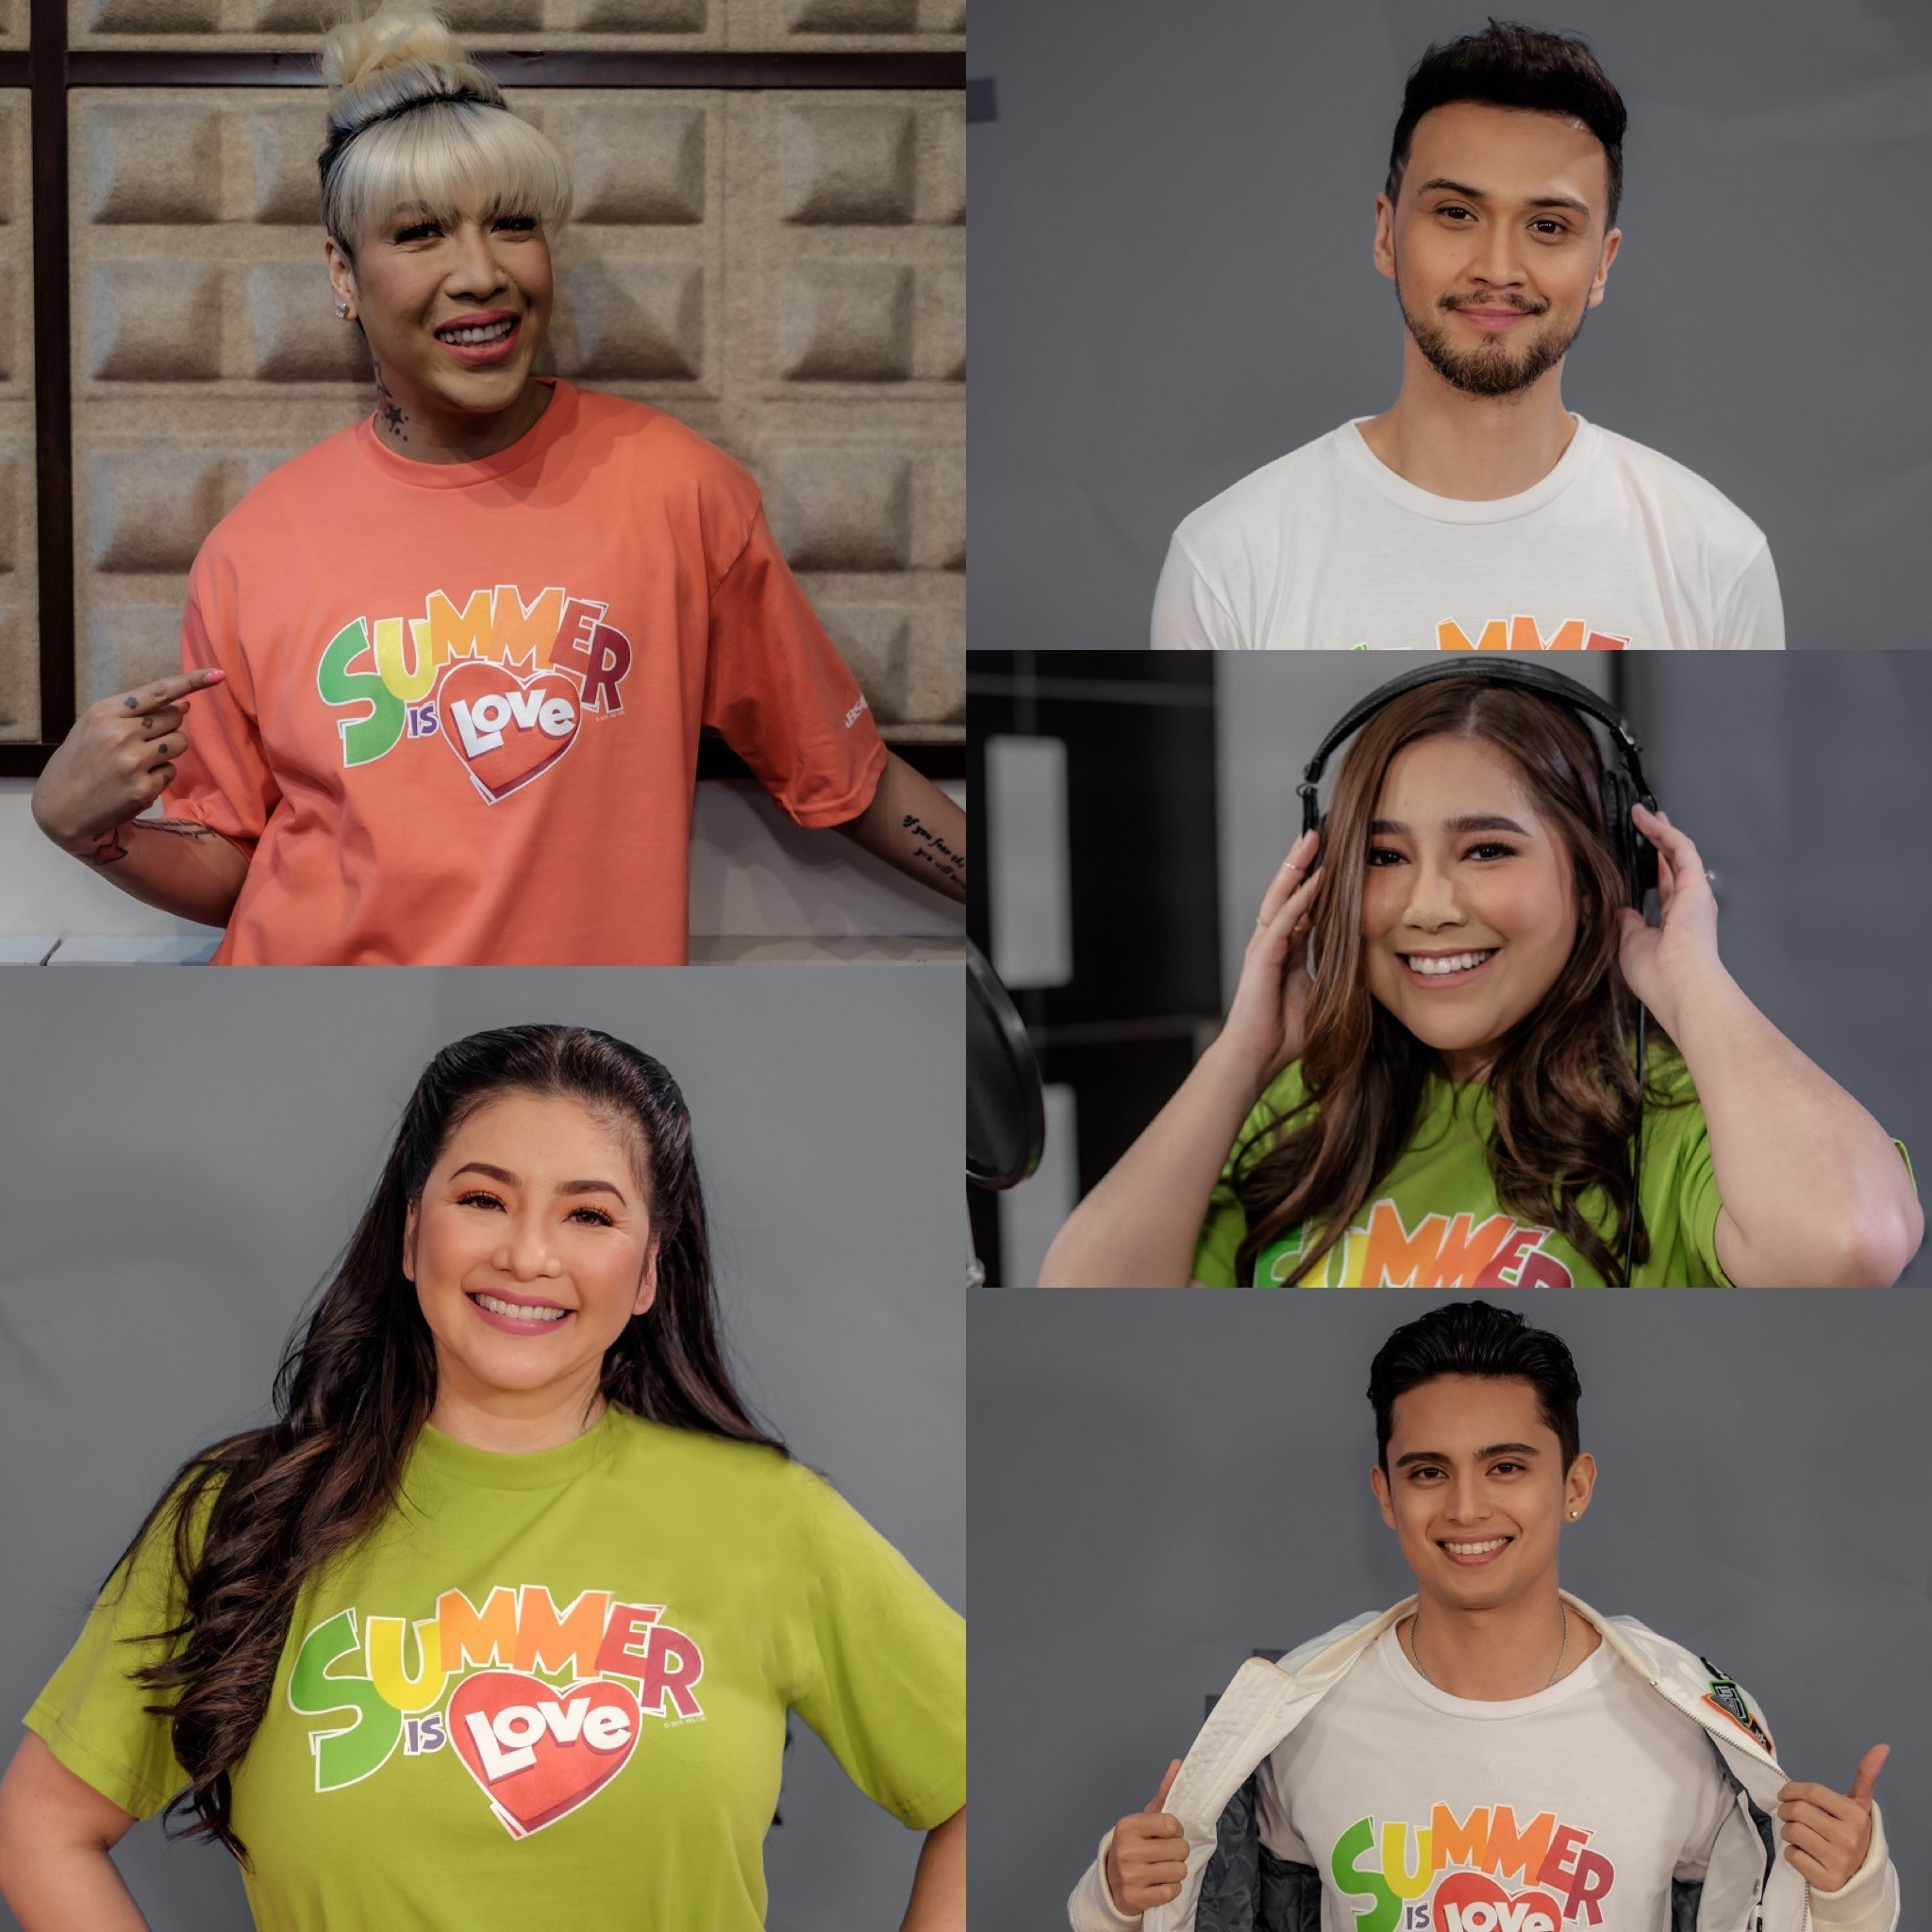 Watch the recording lyric video for the 2019 ABS CBN Summer Station ID